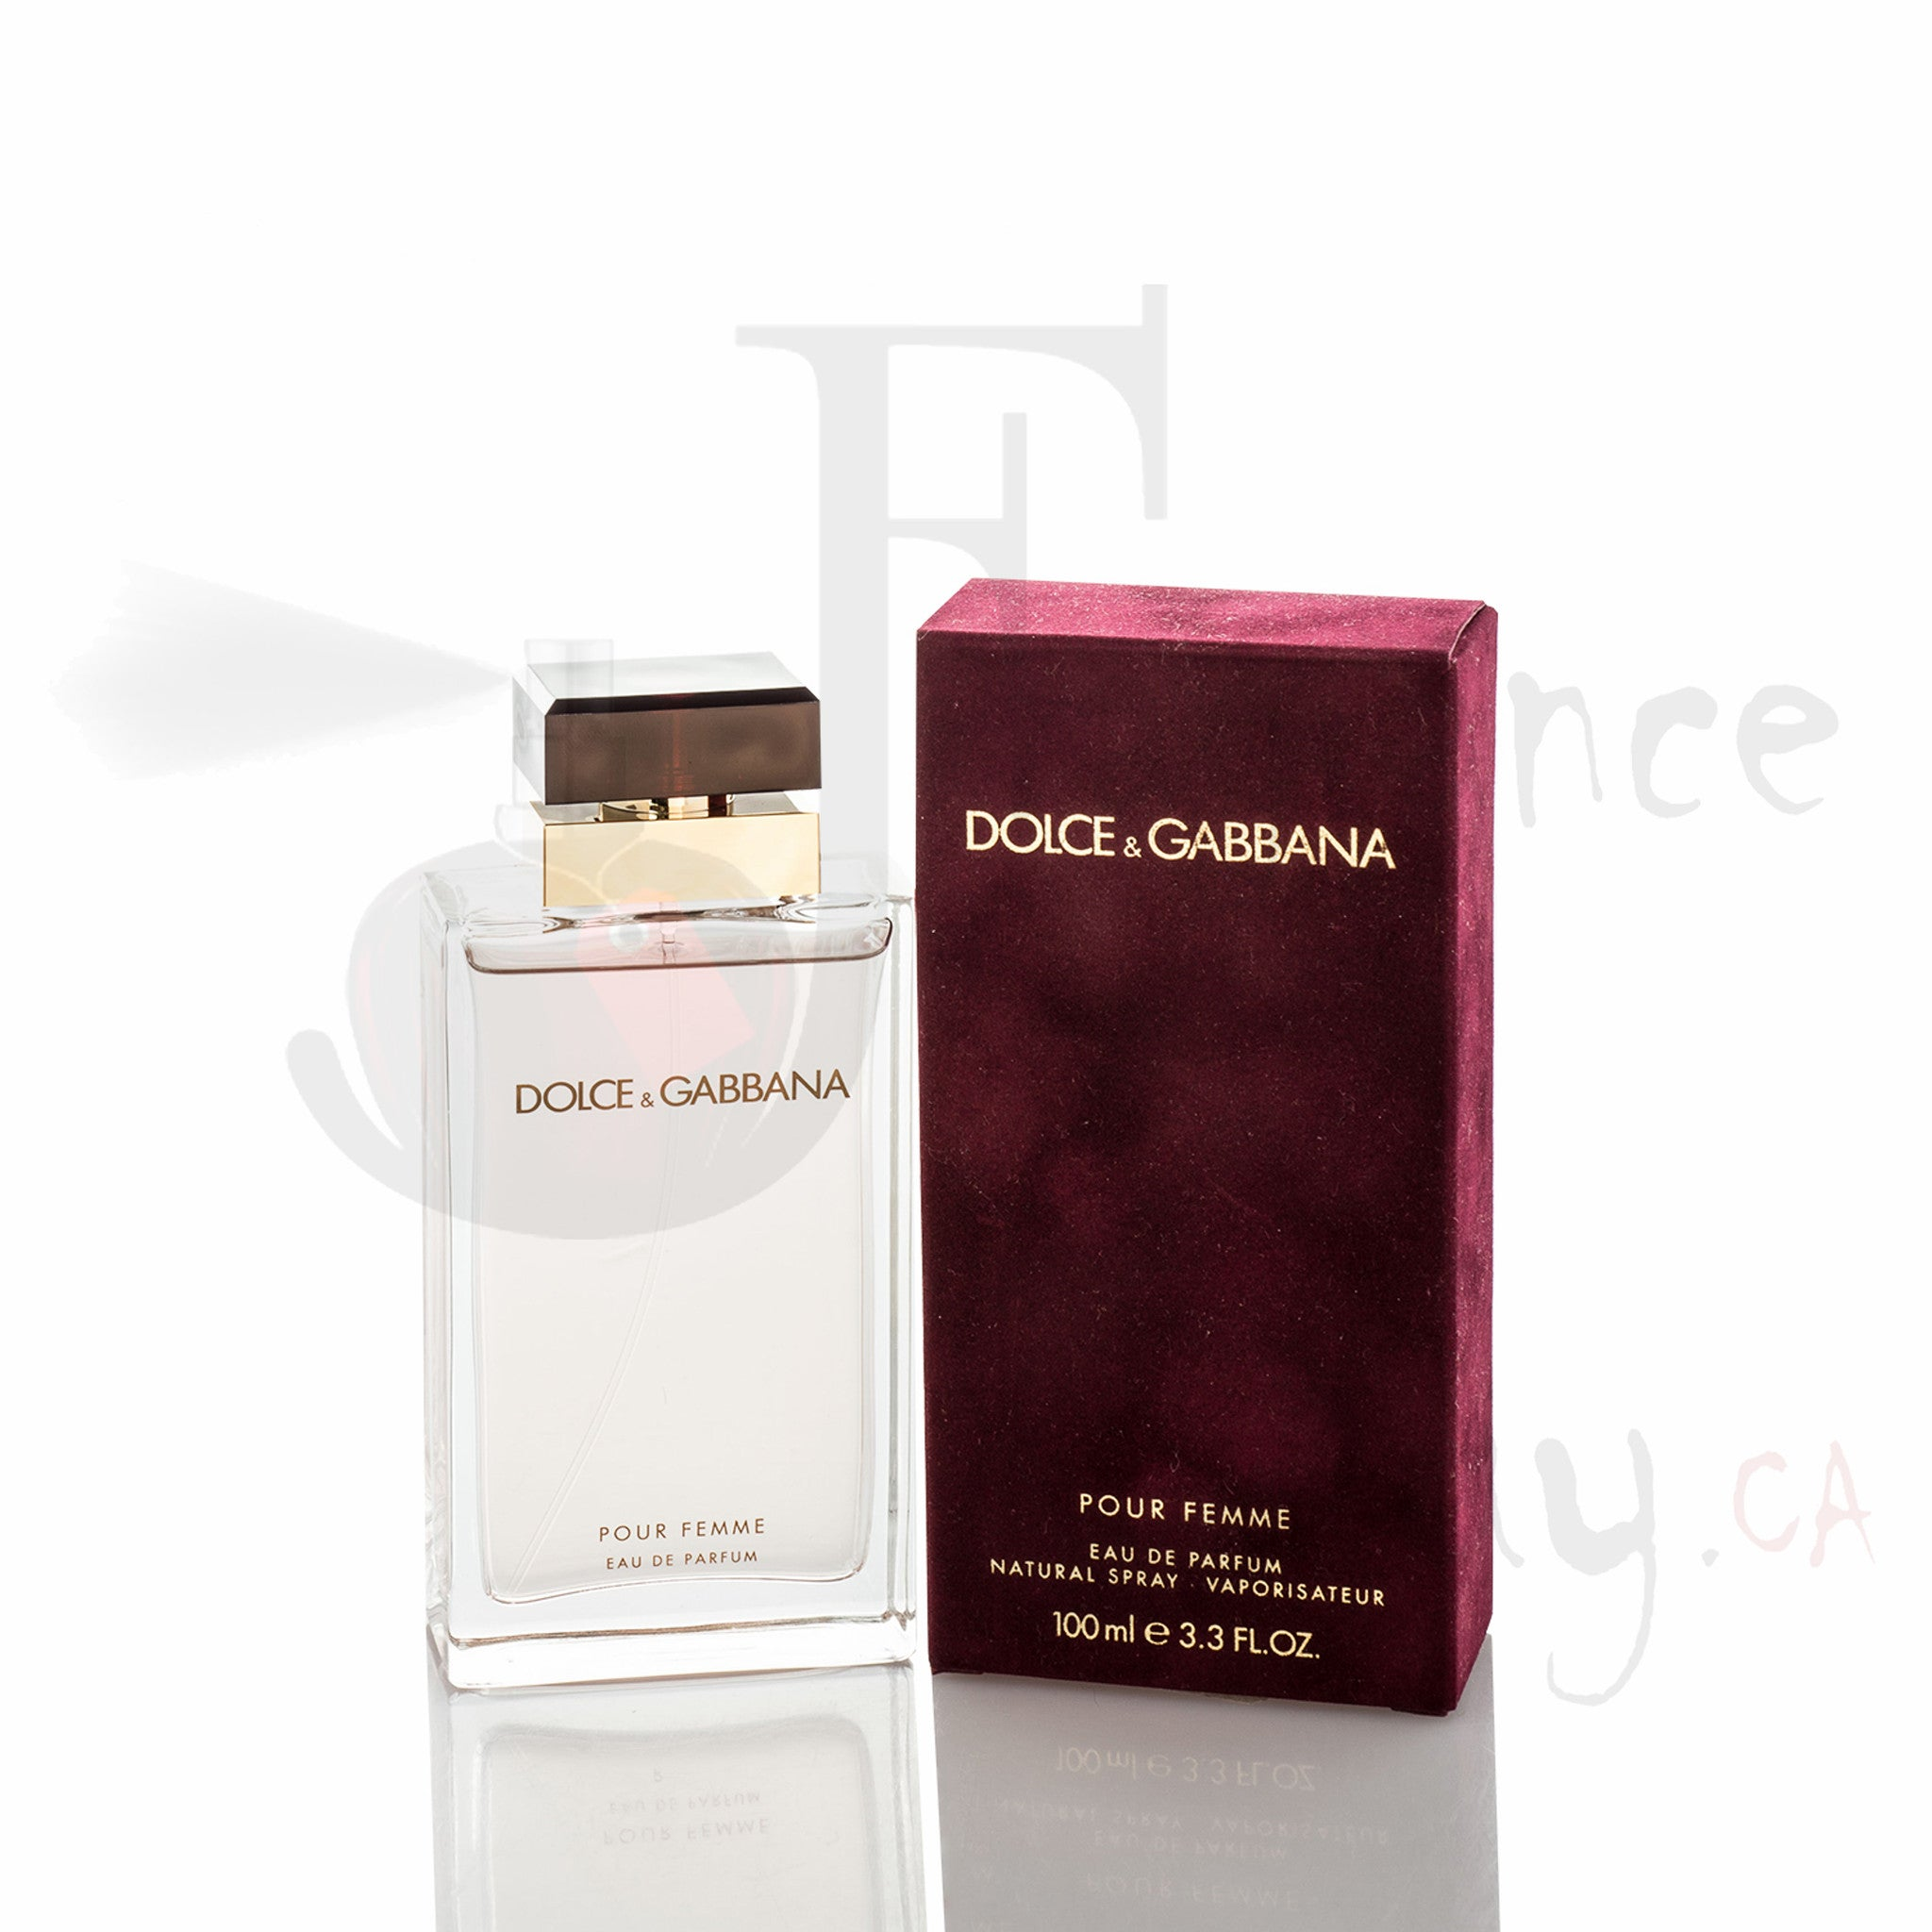 Dolce & Gabbana Femme (Red) EDP For Woman